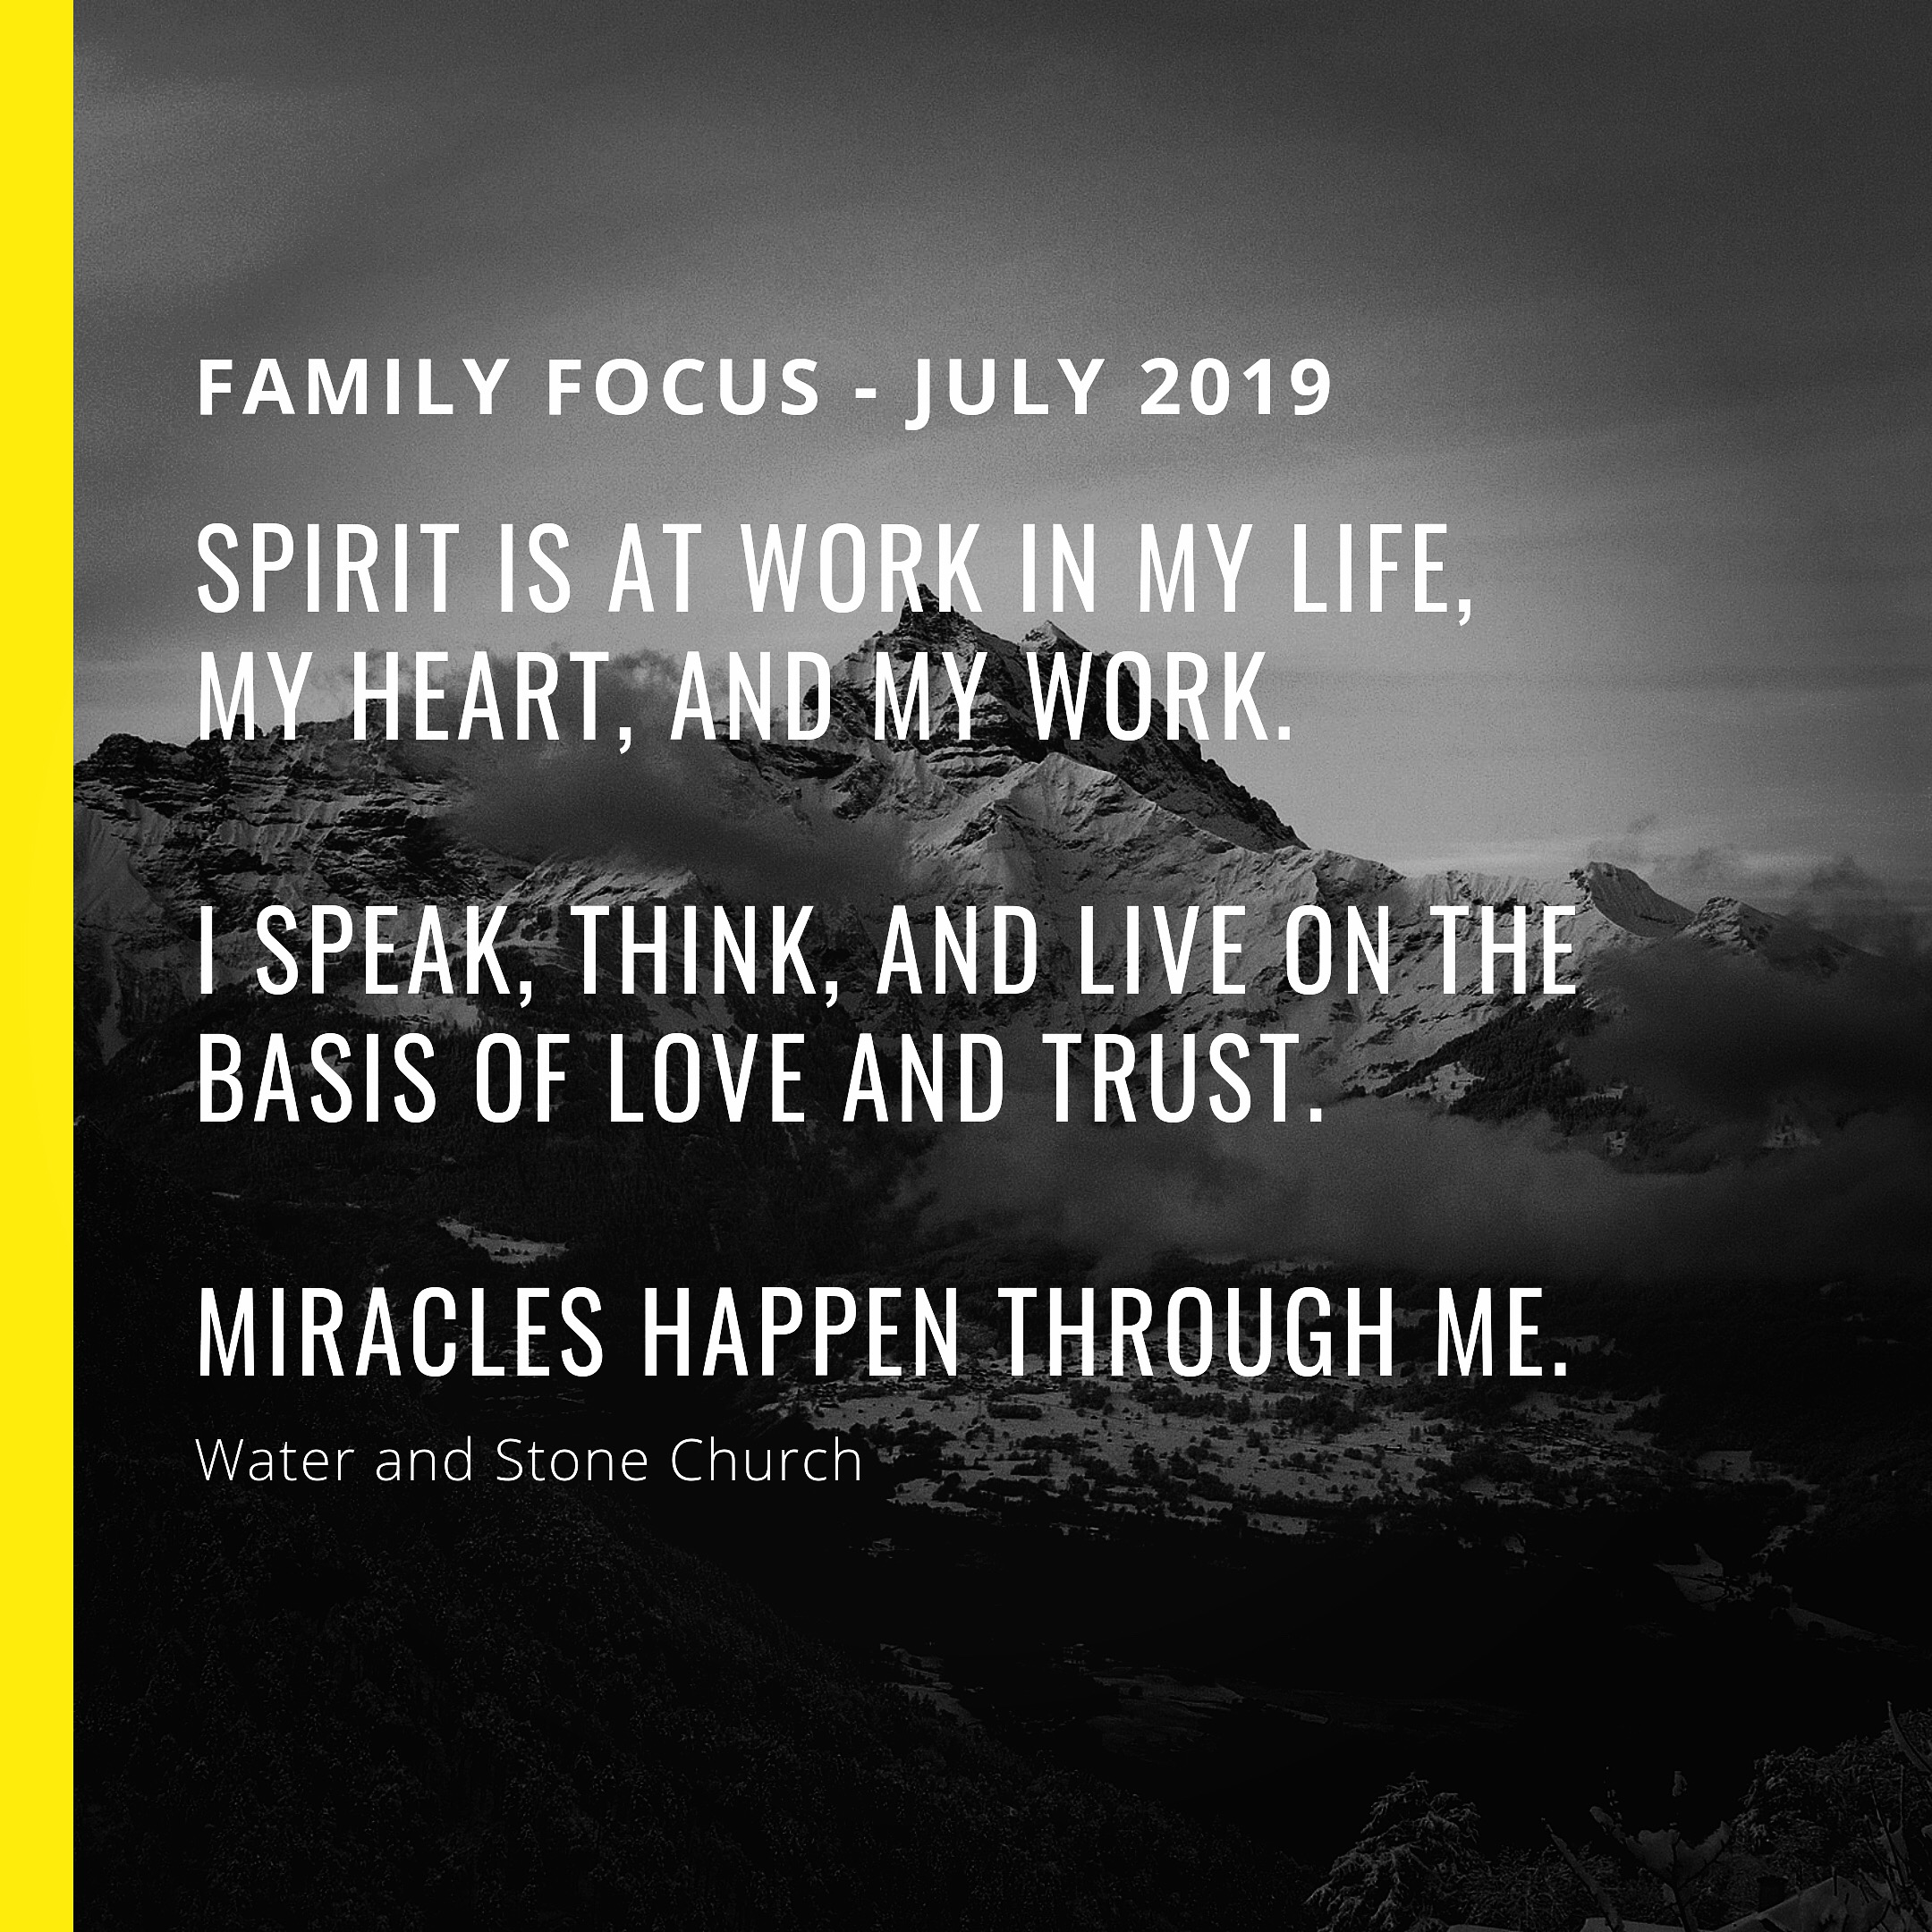 Family Focus - July 2019 — Water and Stone Church